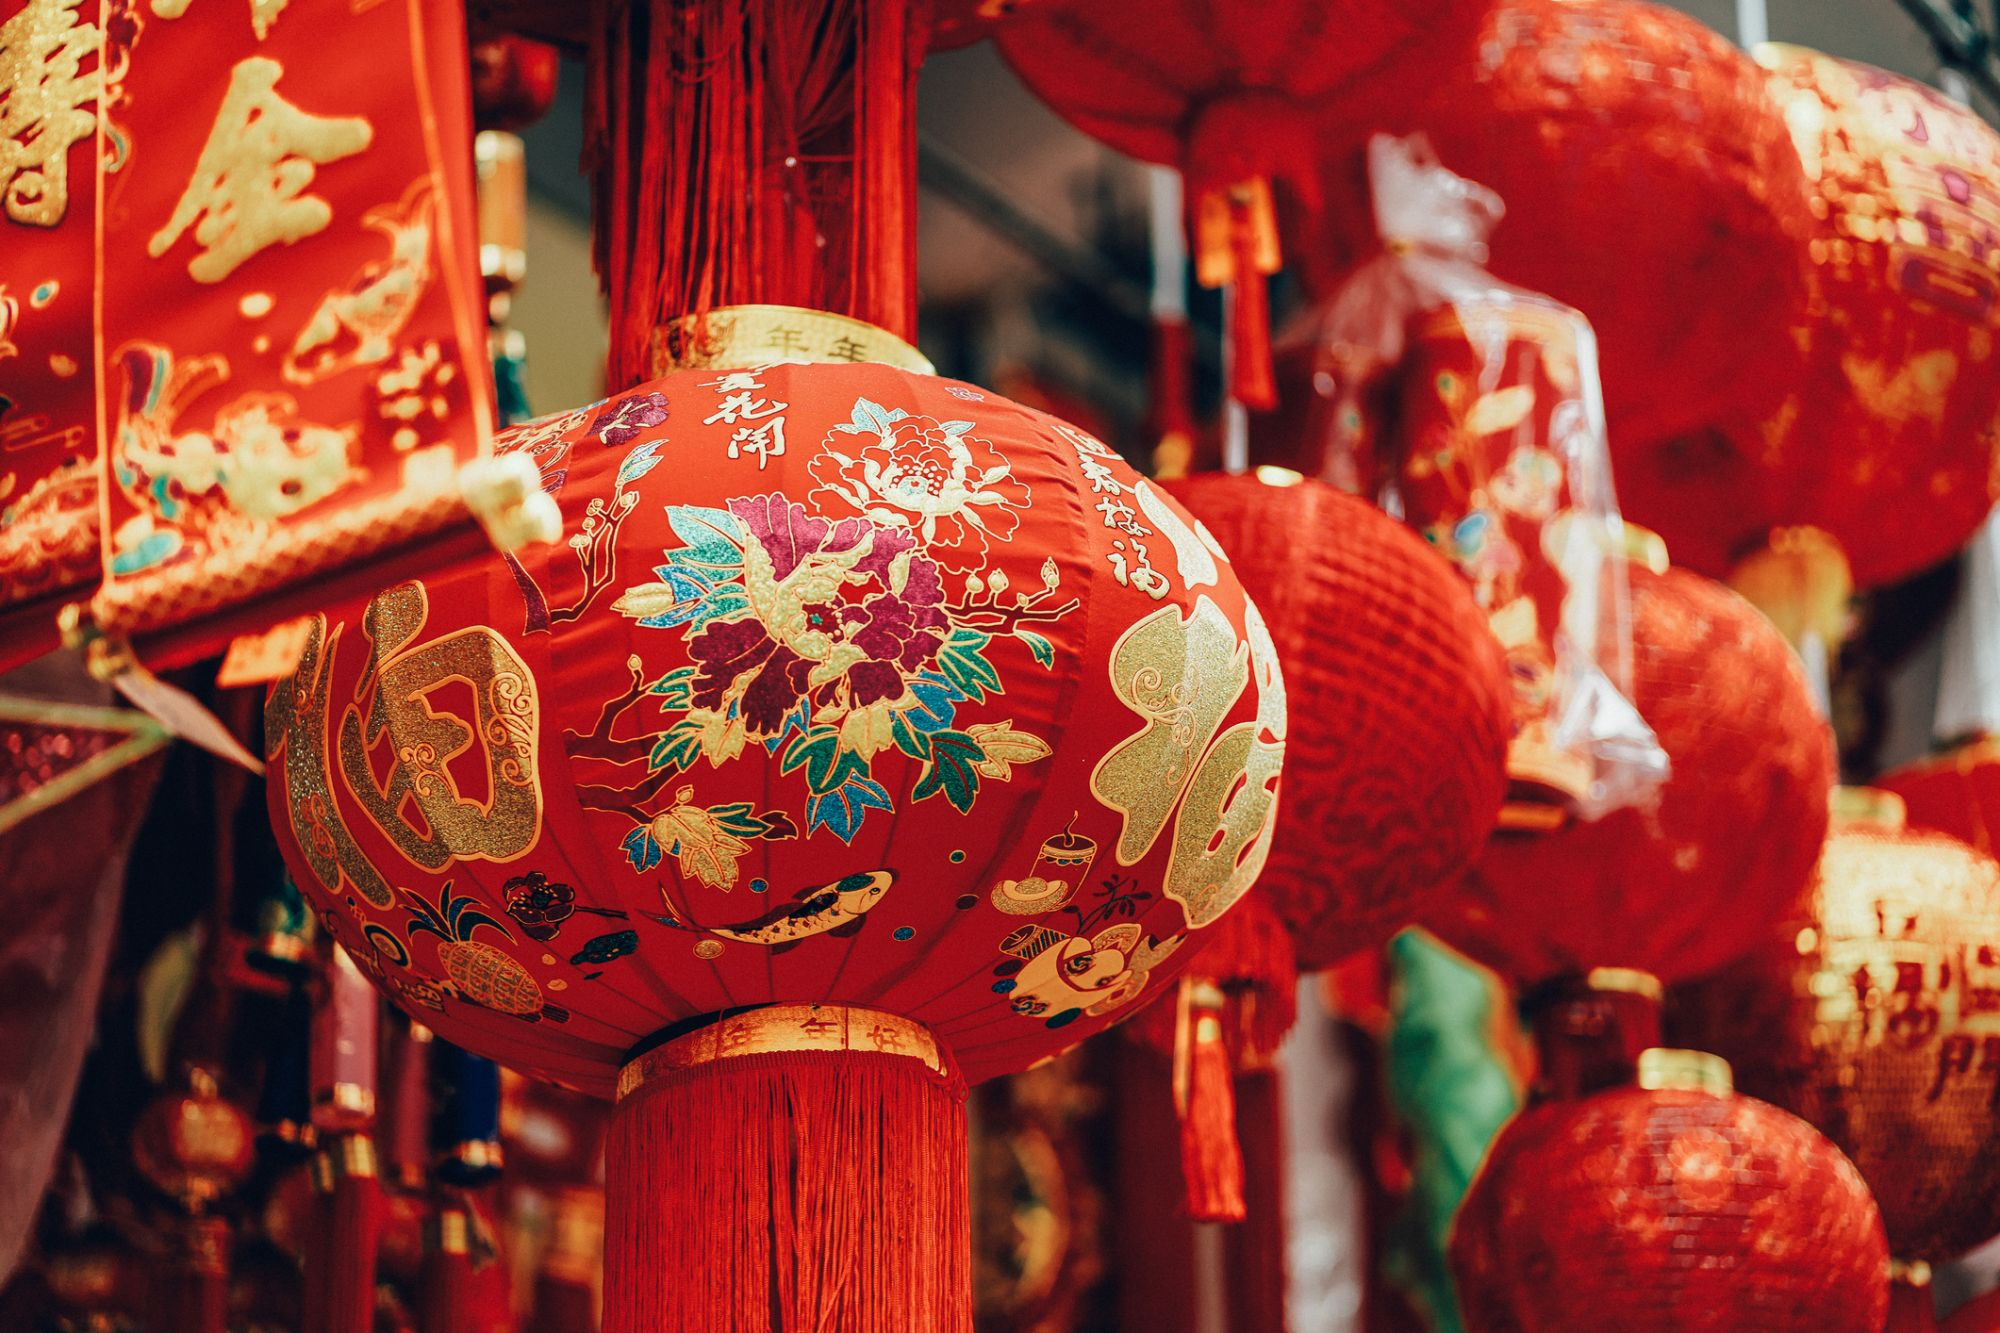 Vibrant colours of lanterns, decorations and ornaments for Chinese New Year in celebration of luck, healthiness, happiness, reunion and prosperities